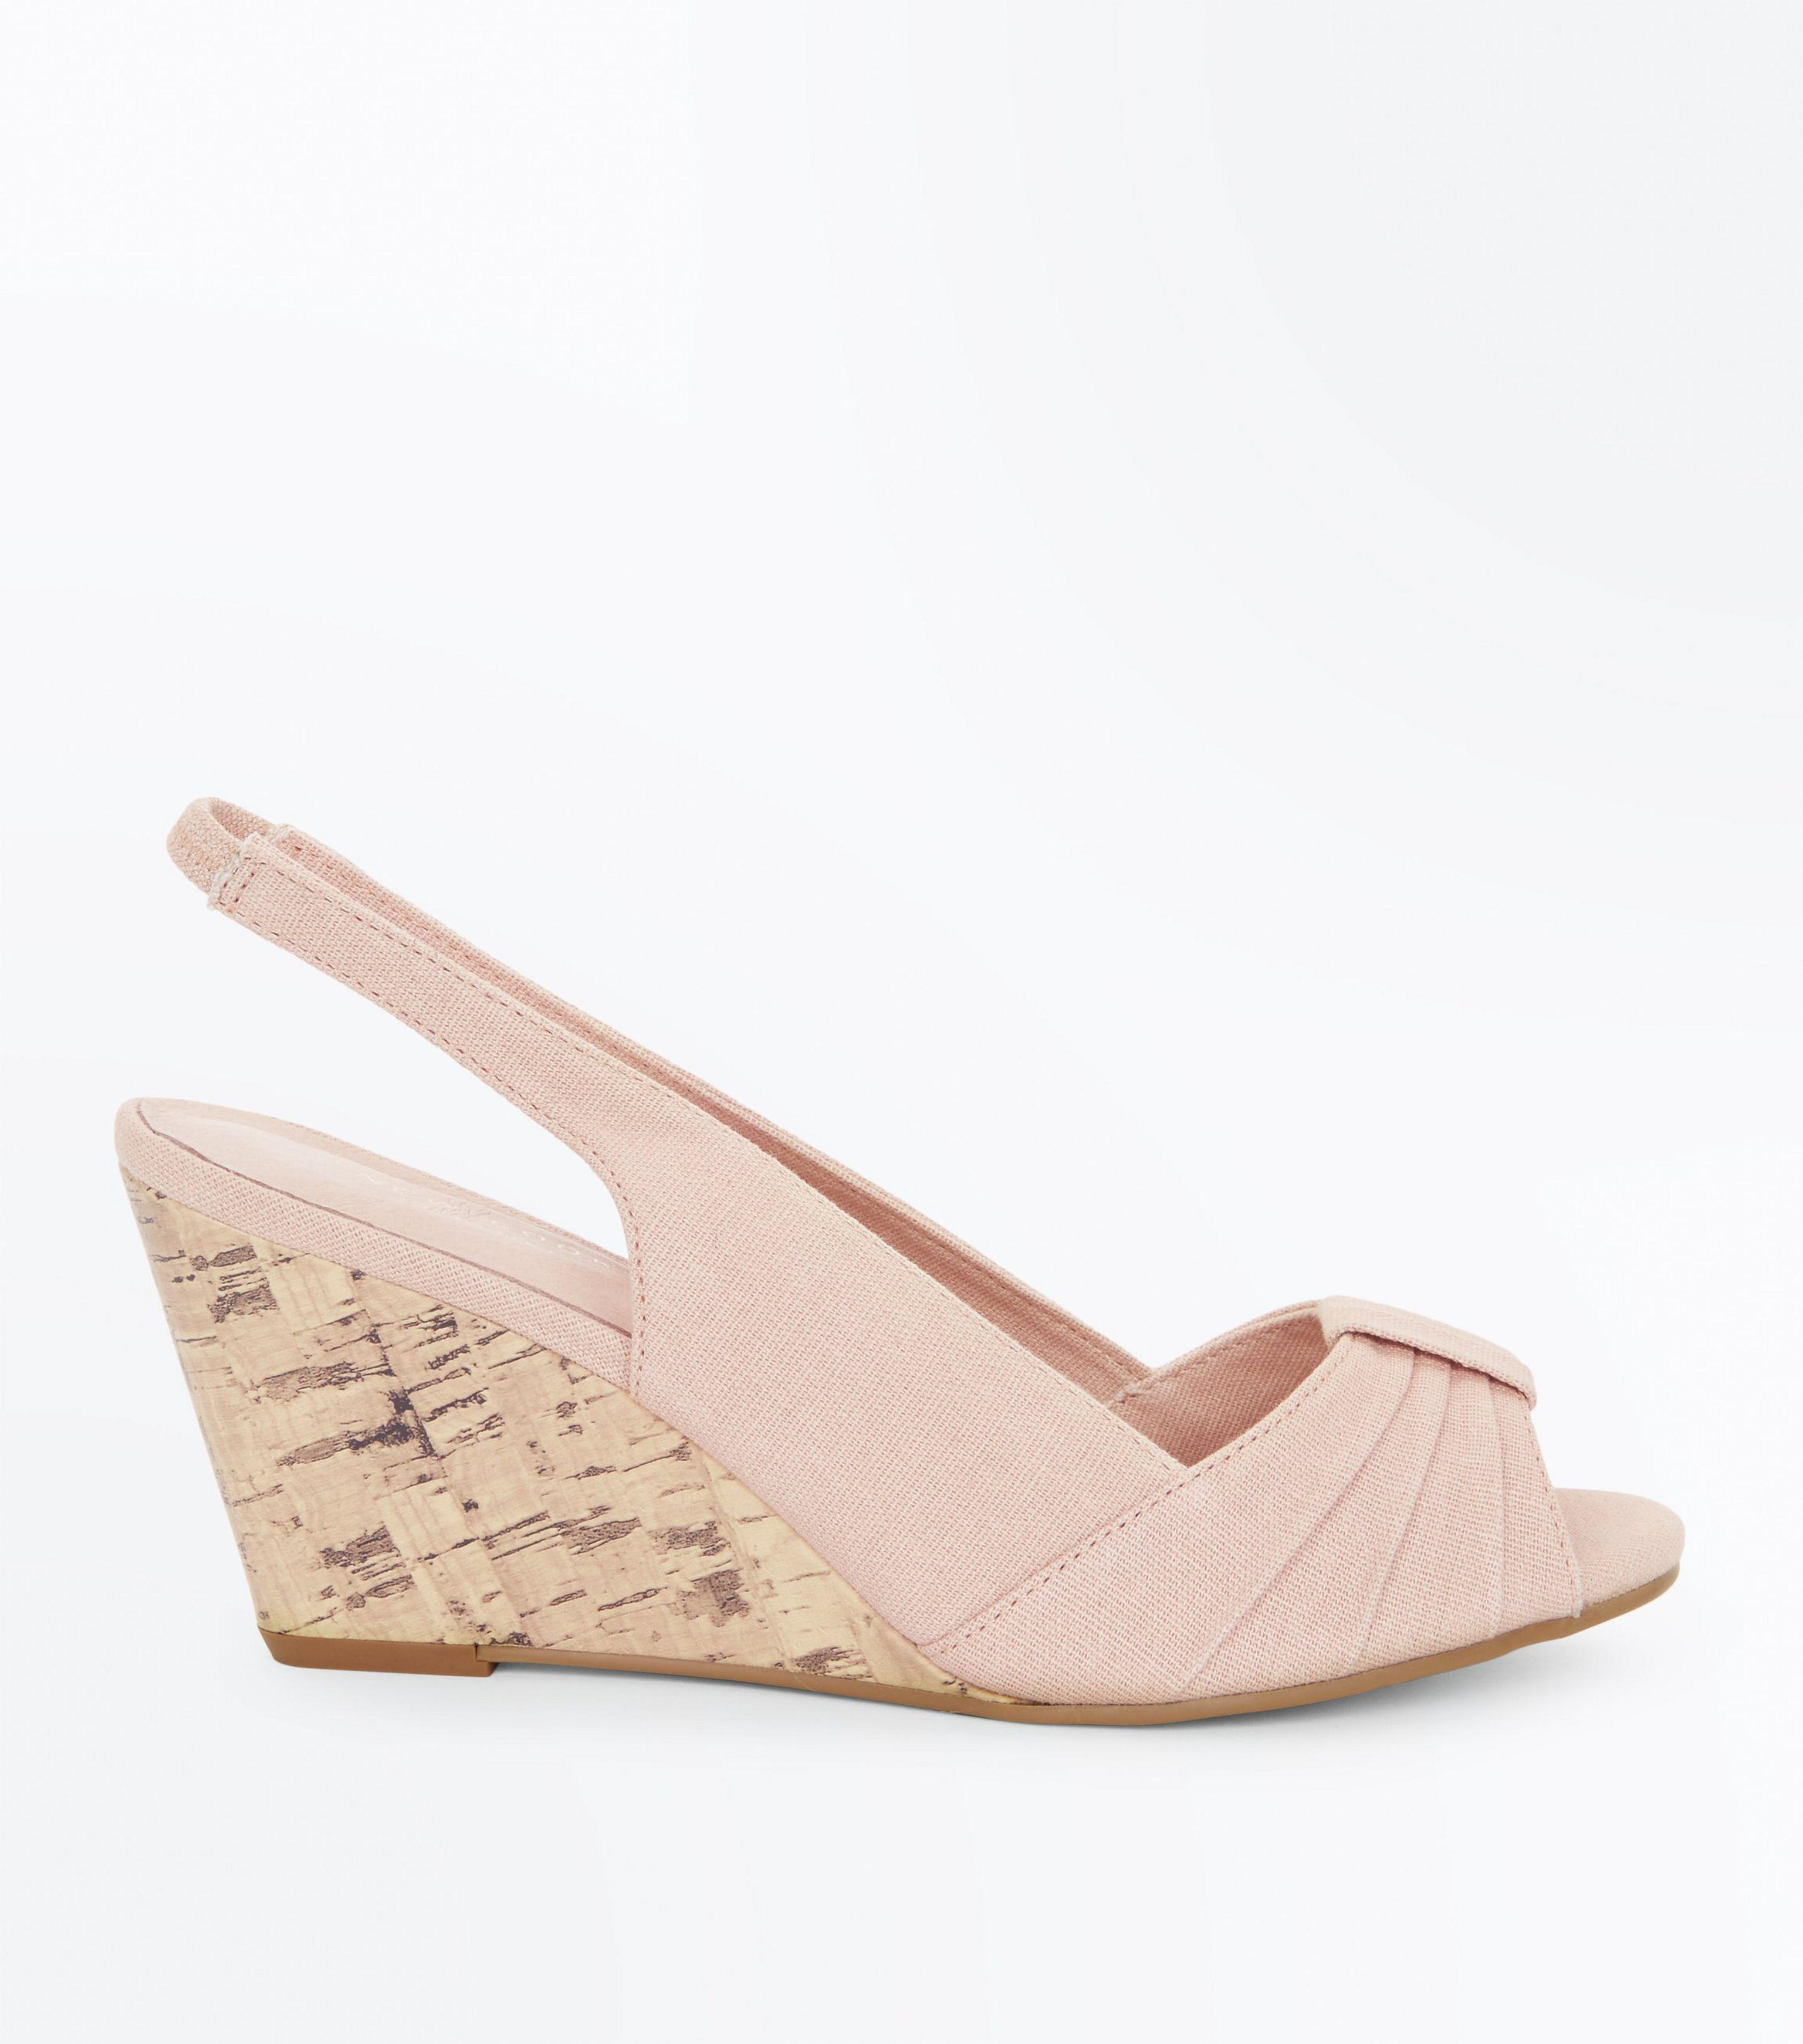 b1fa0a27415 New Look Nude Comfort Canvas Peep Toe Wedges in Natural - Lyst